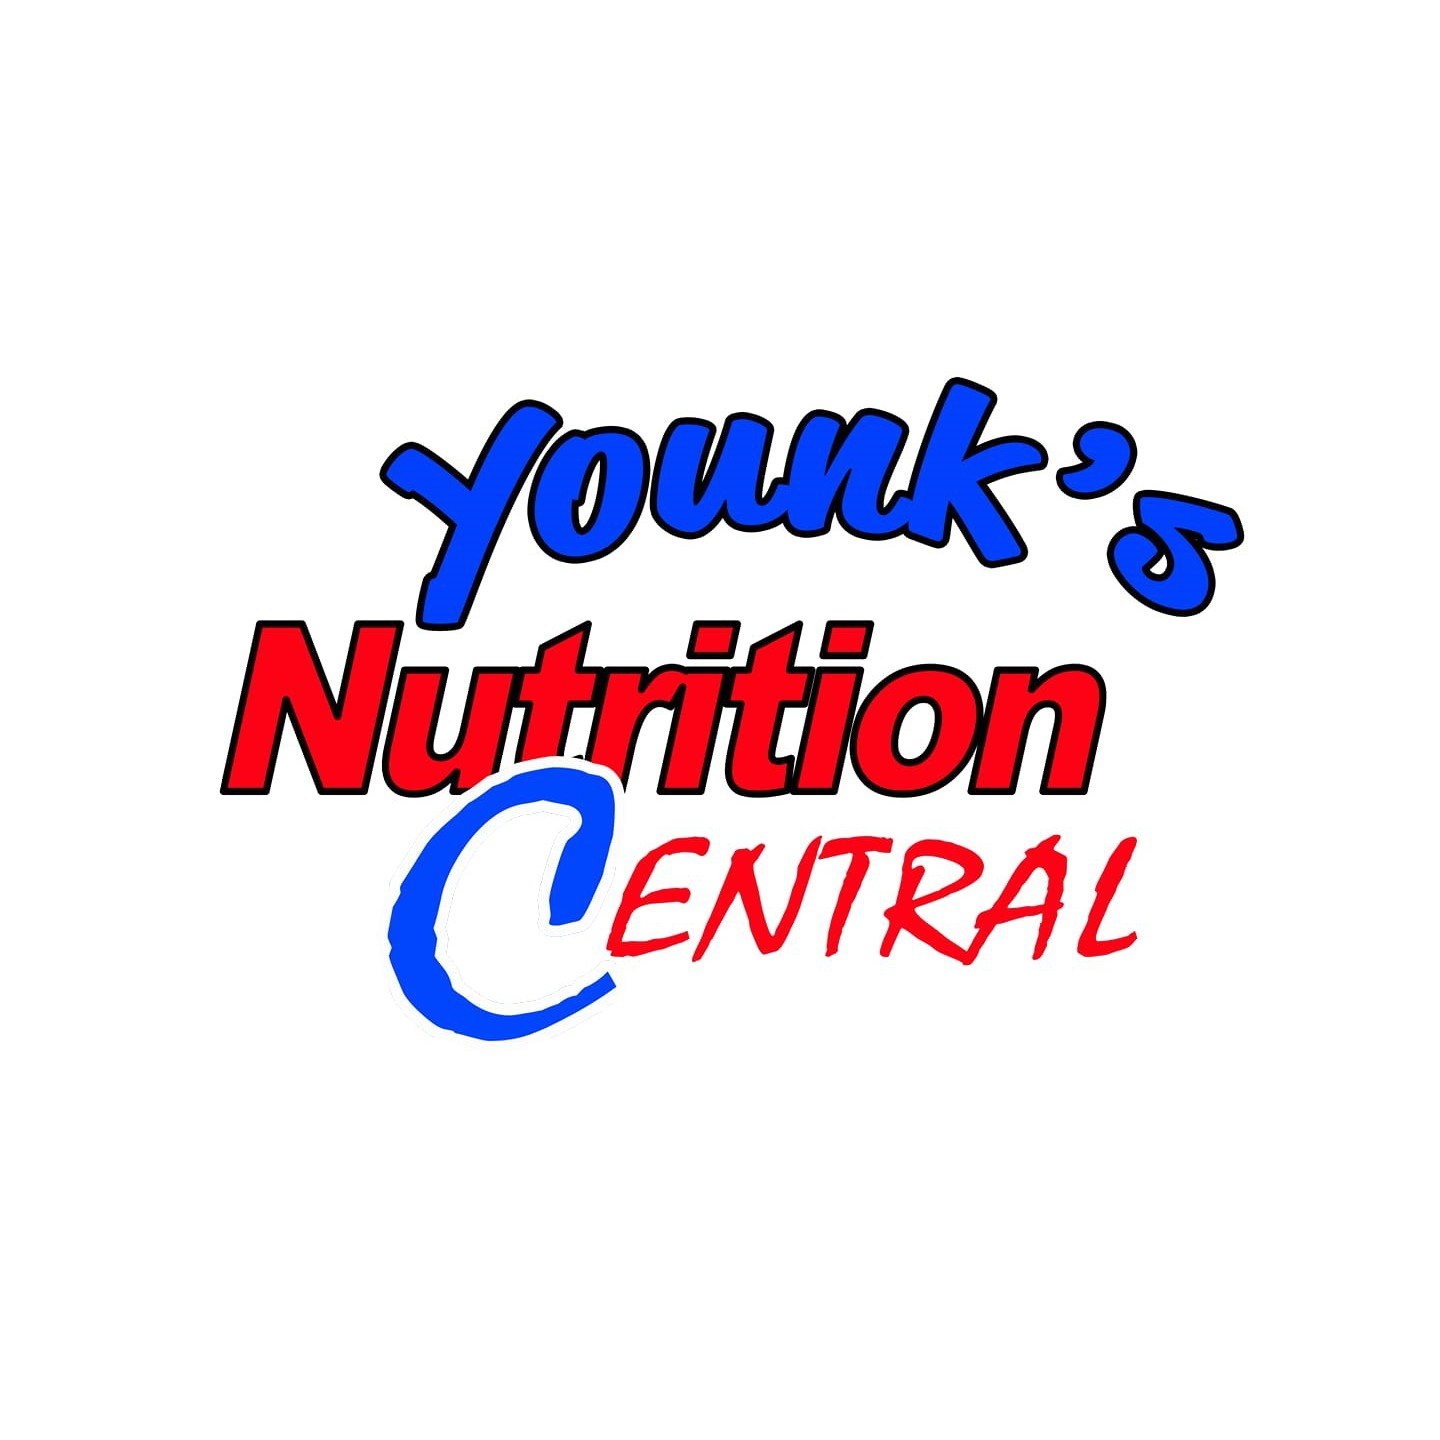 Younk's Nutrition Central